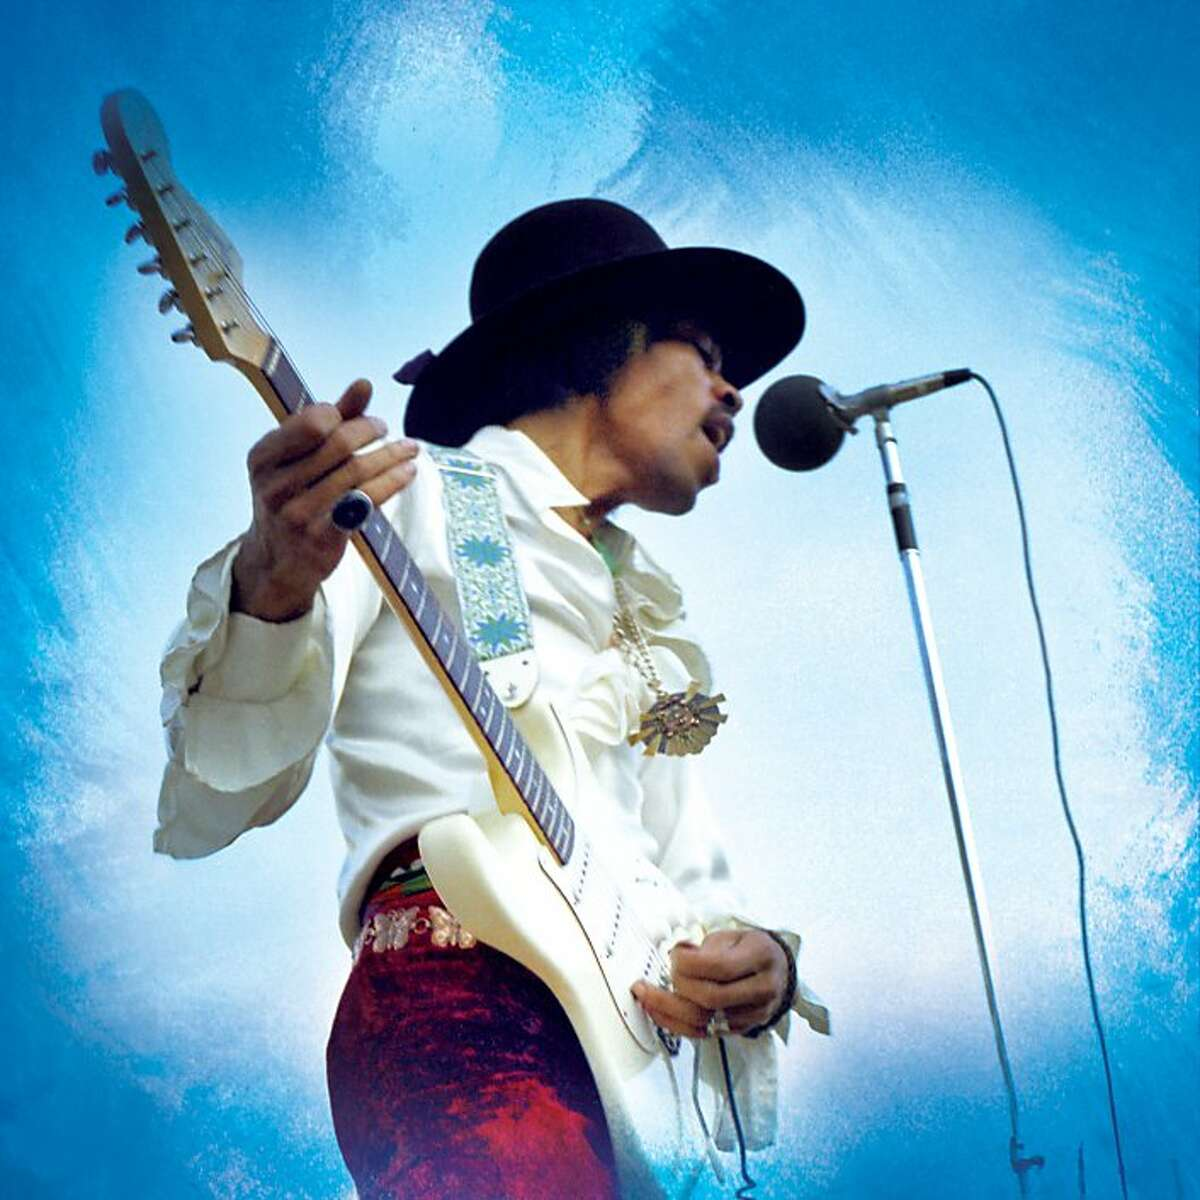 Jimi Hendrix Experience performs at the 1968 Miami Pop Festival. Performance footage from the festival is among the previously unseen treasures featured in American Masters: Jimi Hendrix Ð Hear My Train A Comin?•.